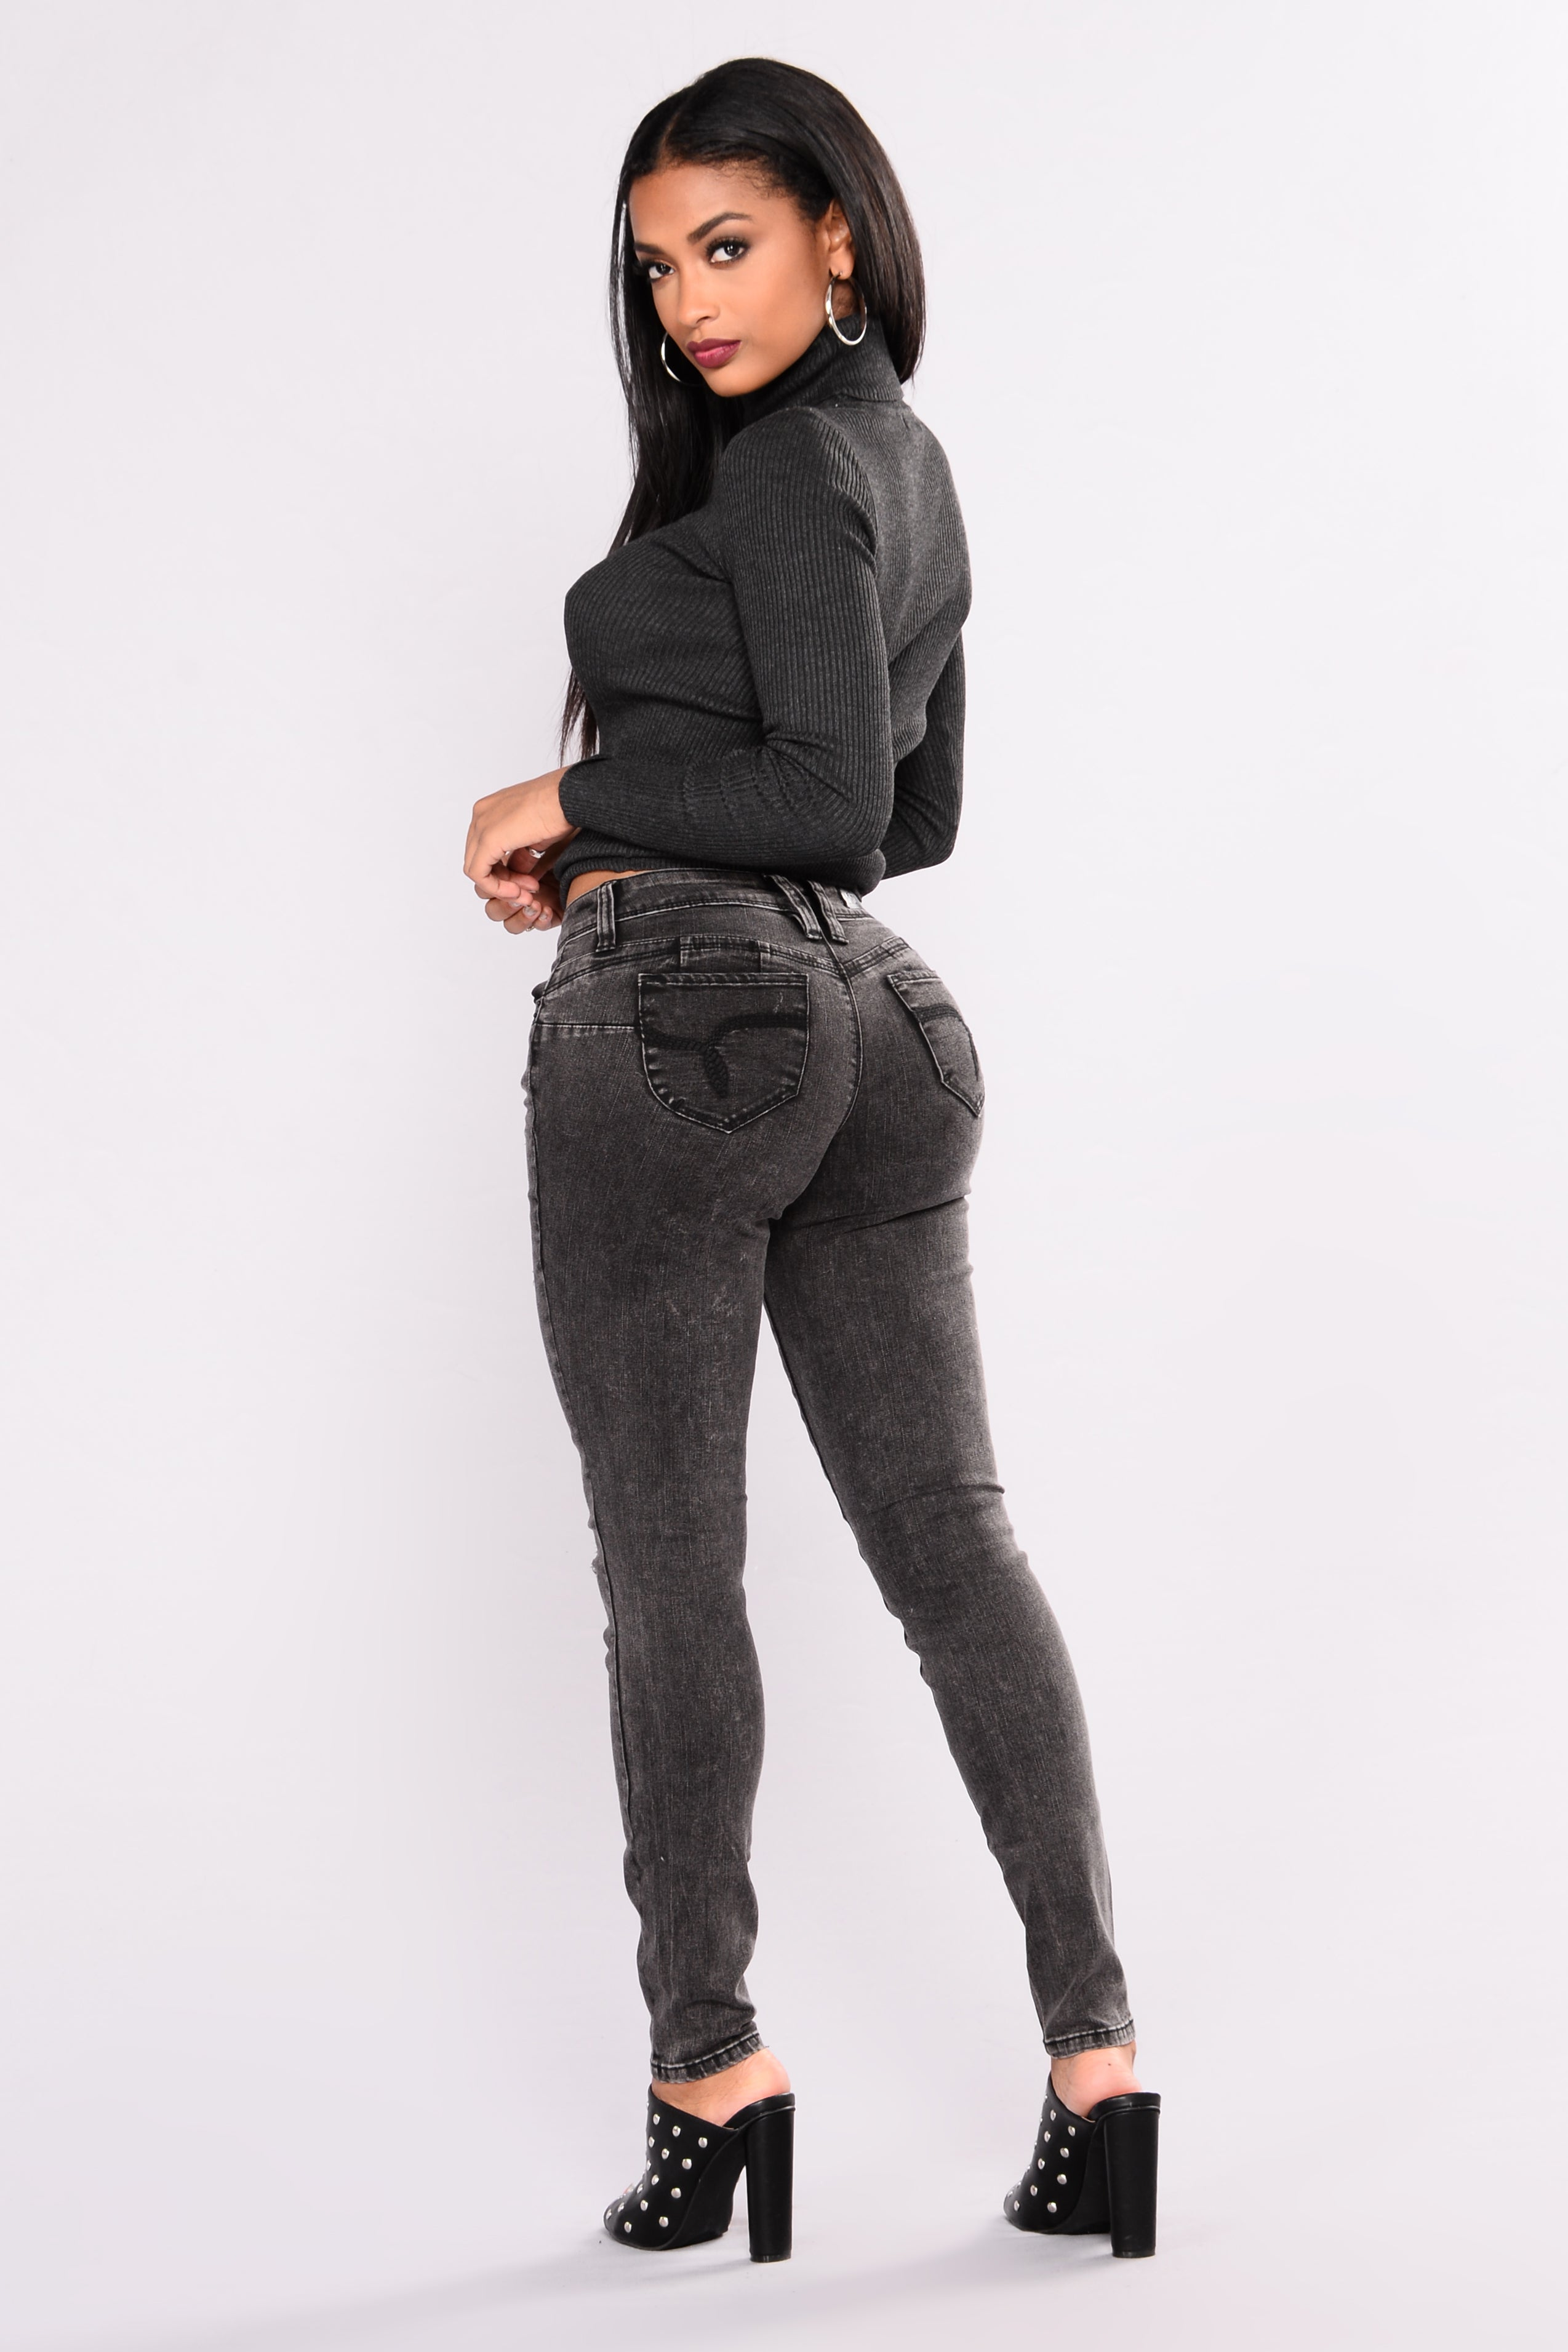 Round Of Applause Booty Lifting Jeans - Black-9582